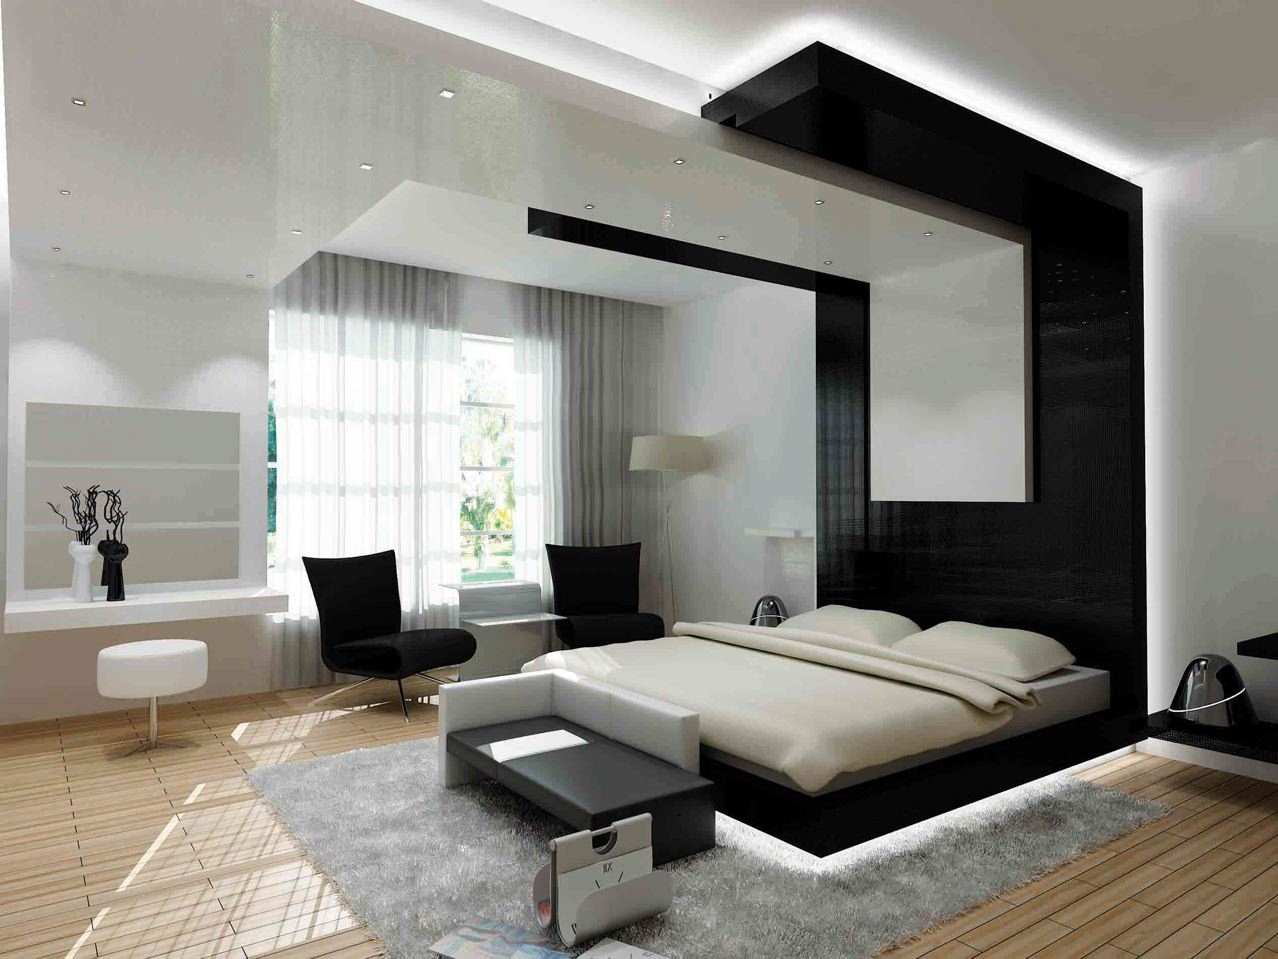 25 bedroom design ideas for your home for Bedroom picture ideas